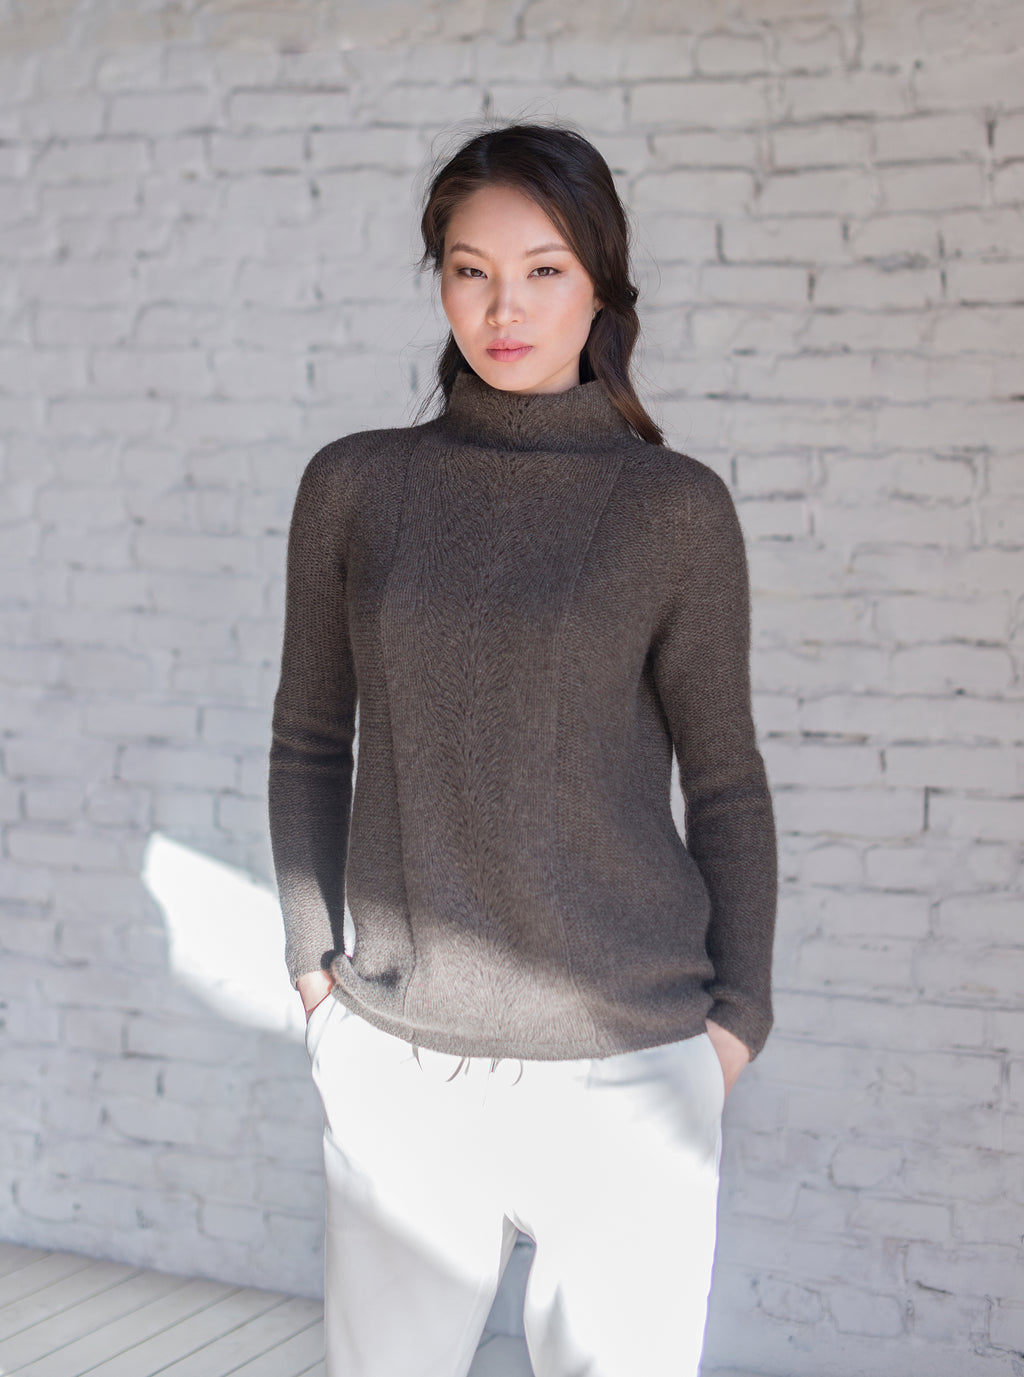 High Neck Sweater with Lace Knit Decoration